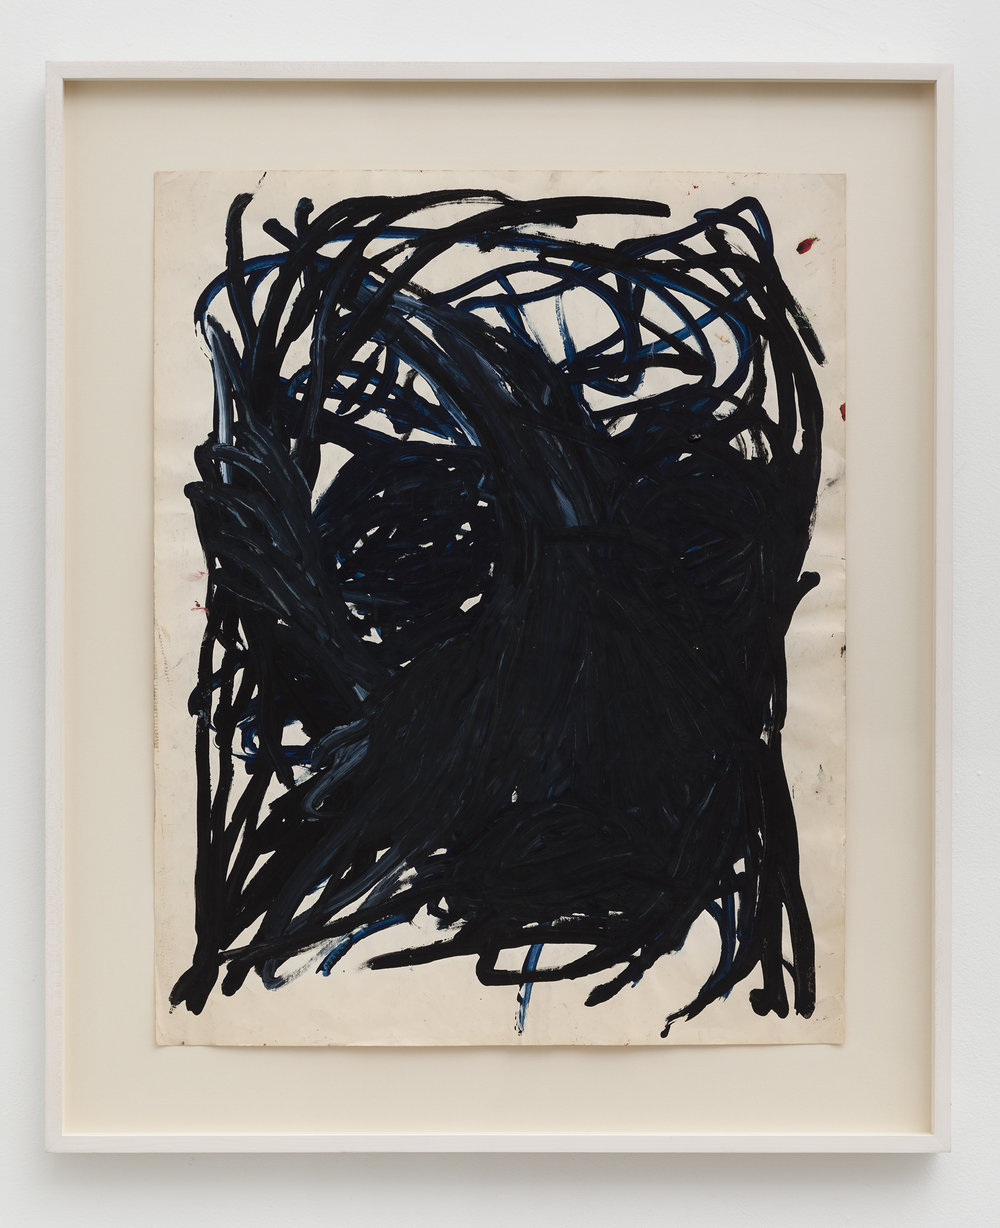 Dan Asher,    Untitled , 1980s, tempera on paper, 29 × 23 in., 36 × 30 in. (framed)